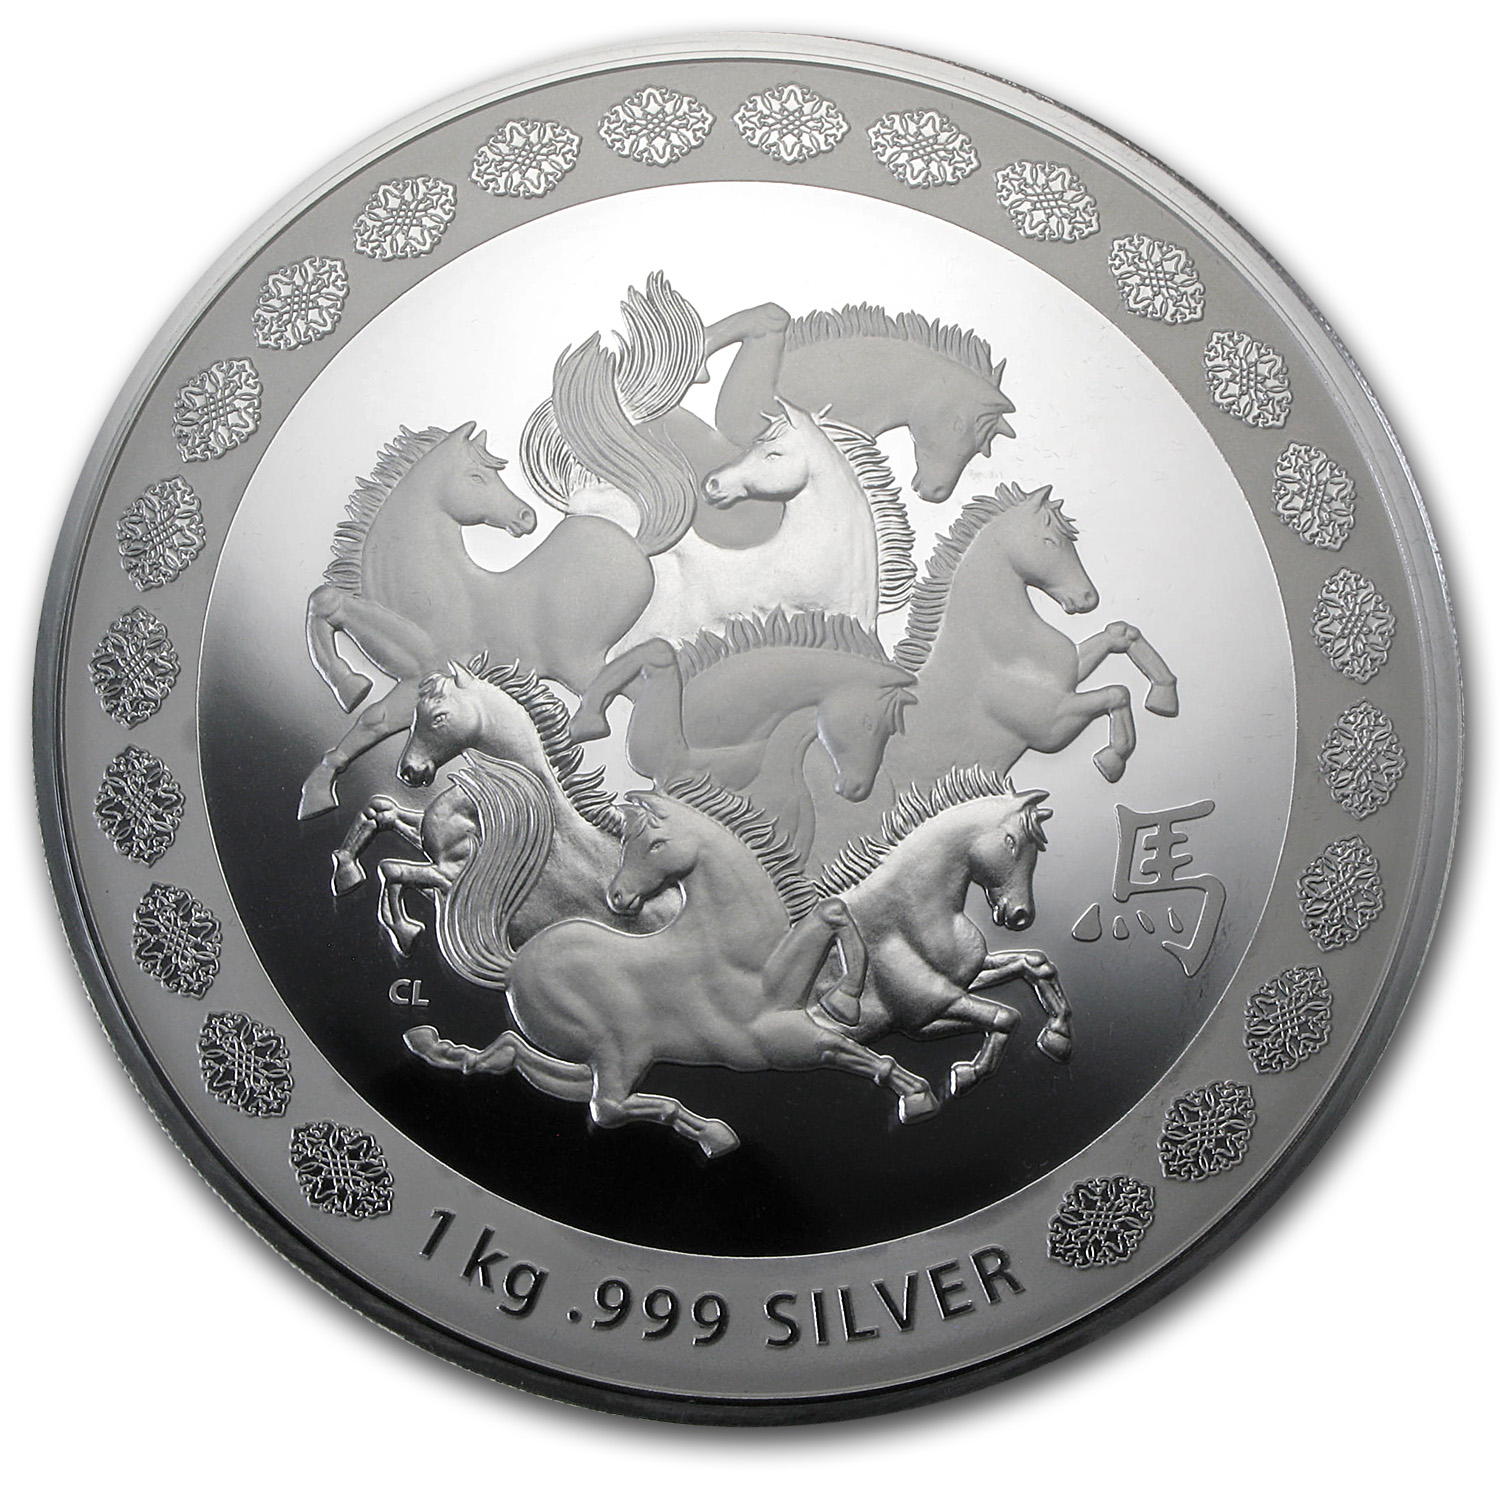 2014 Australia 1 kilo Silver Year of the Horse Proof-Like